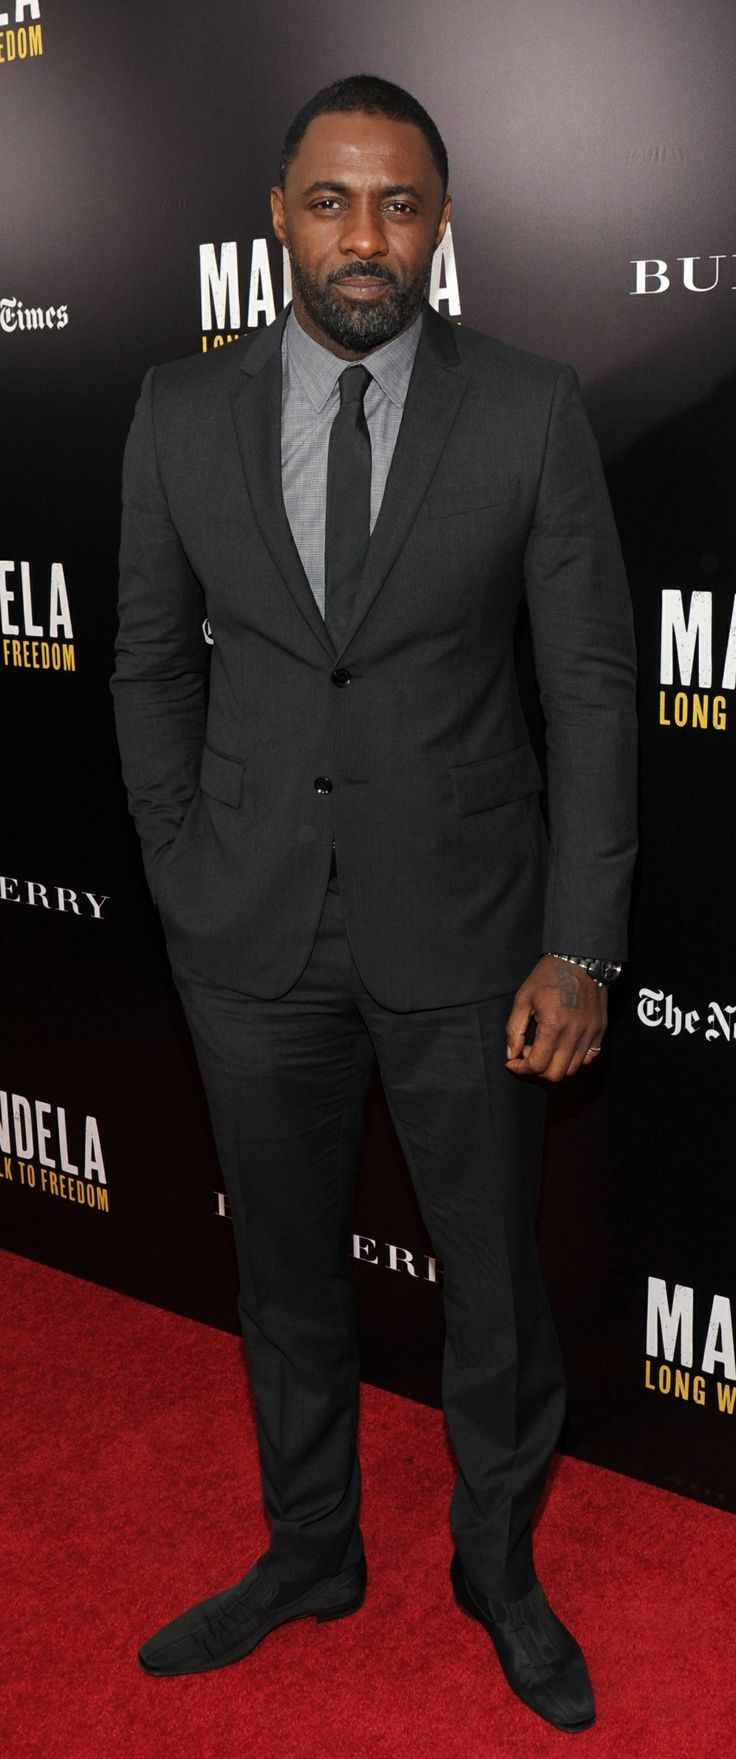 British actor Idris Elba wearing Burberry tailoring at the screening of Mandela: Long Walk to Freedom in NYC